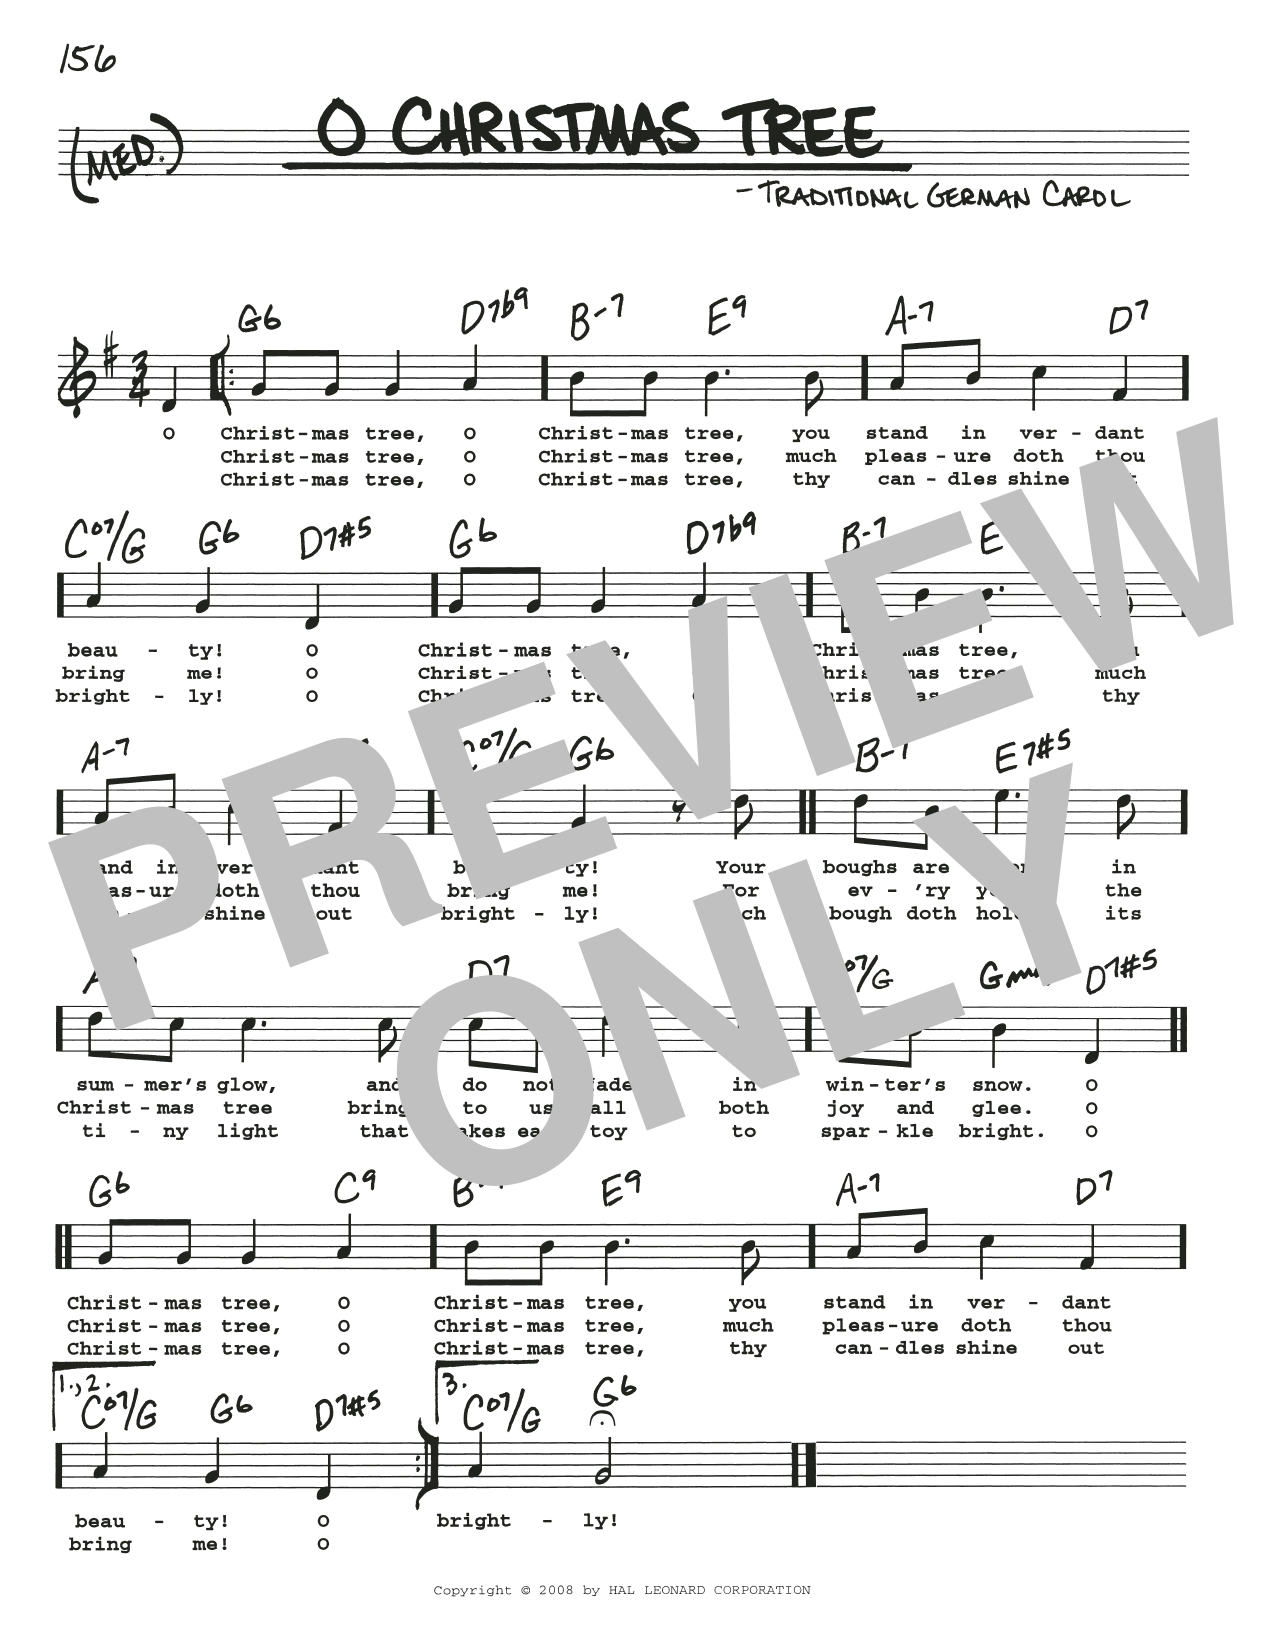 O Christmas Tree Sheet Music | Traditional German Carol | Real Book ...